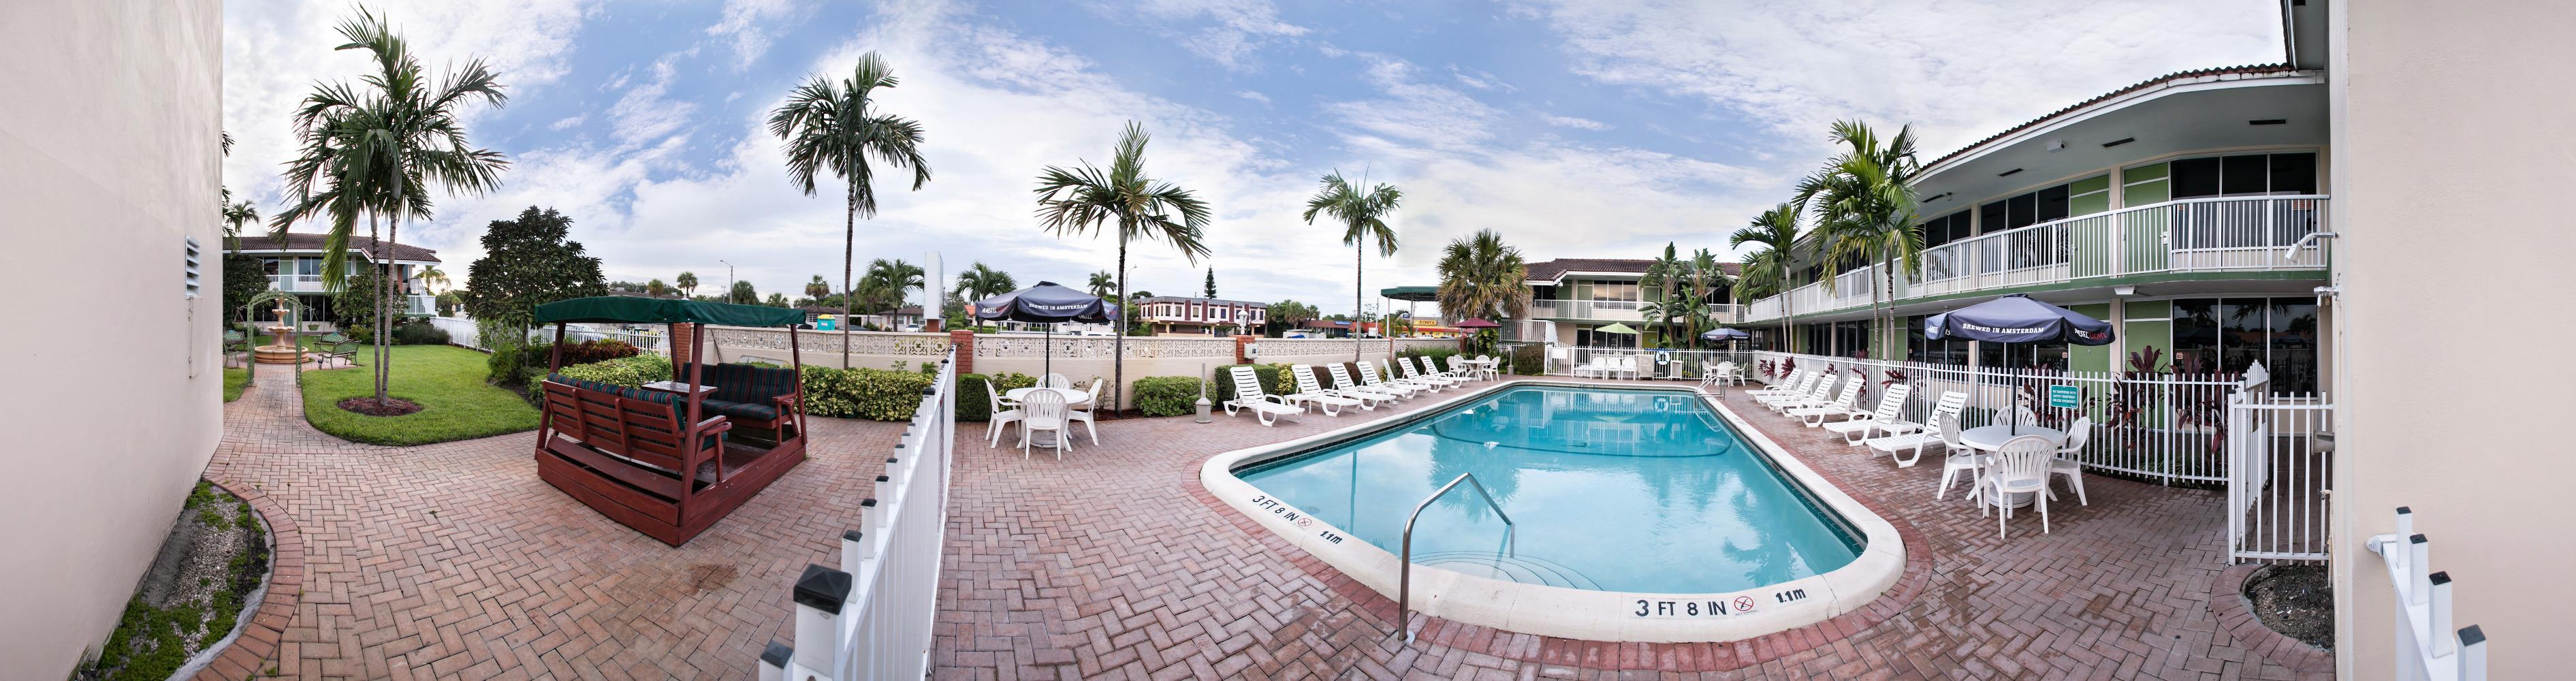 Free Shuttle From Fll To Miami Hotel